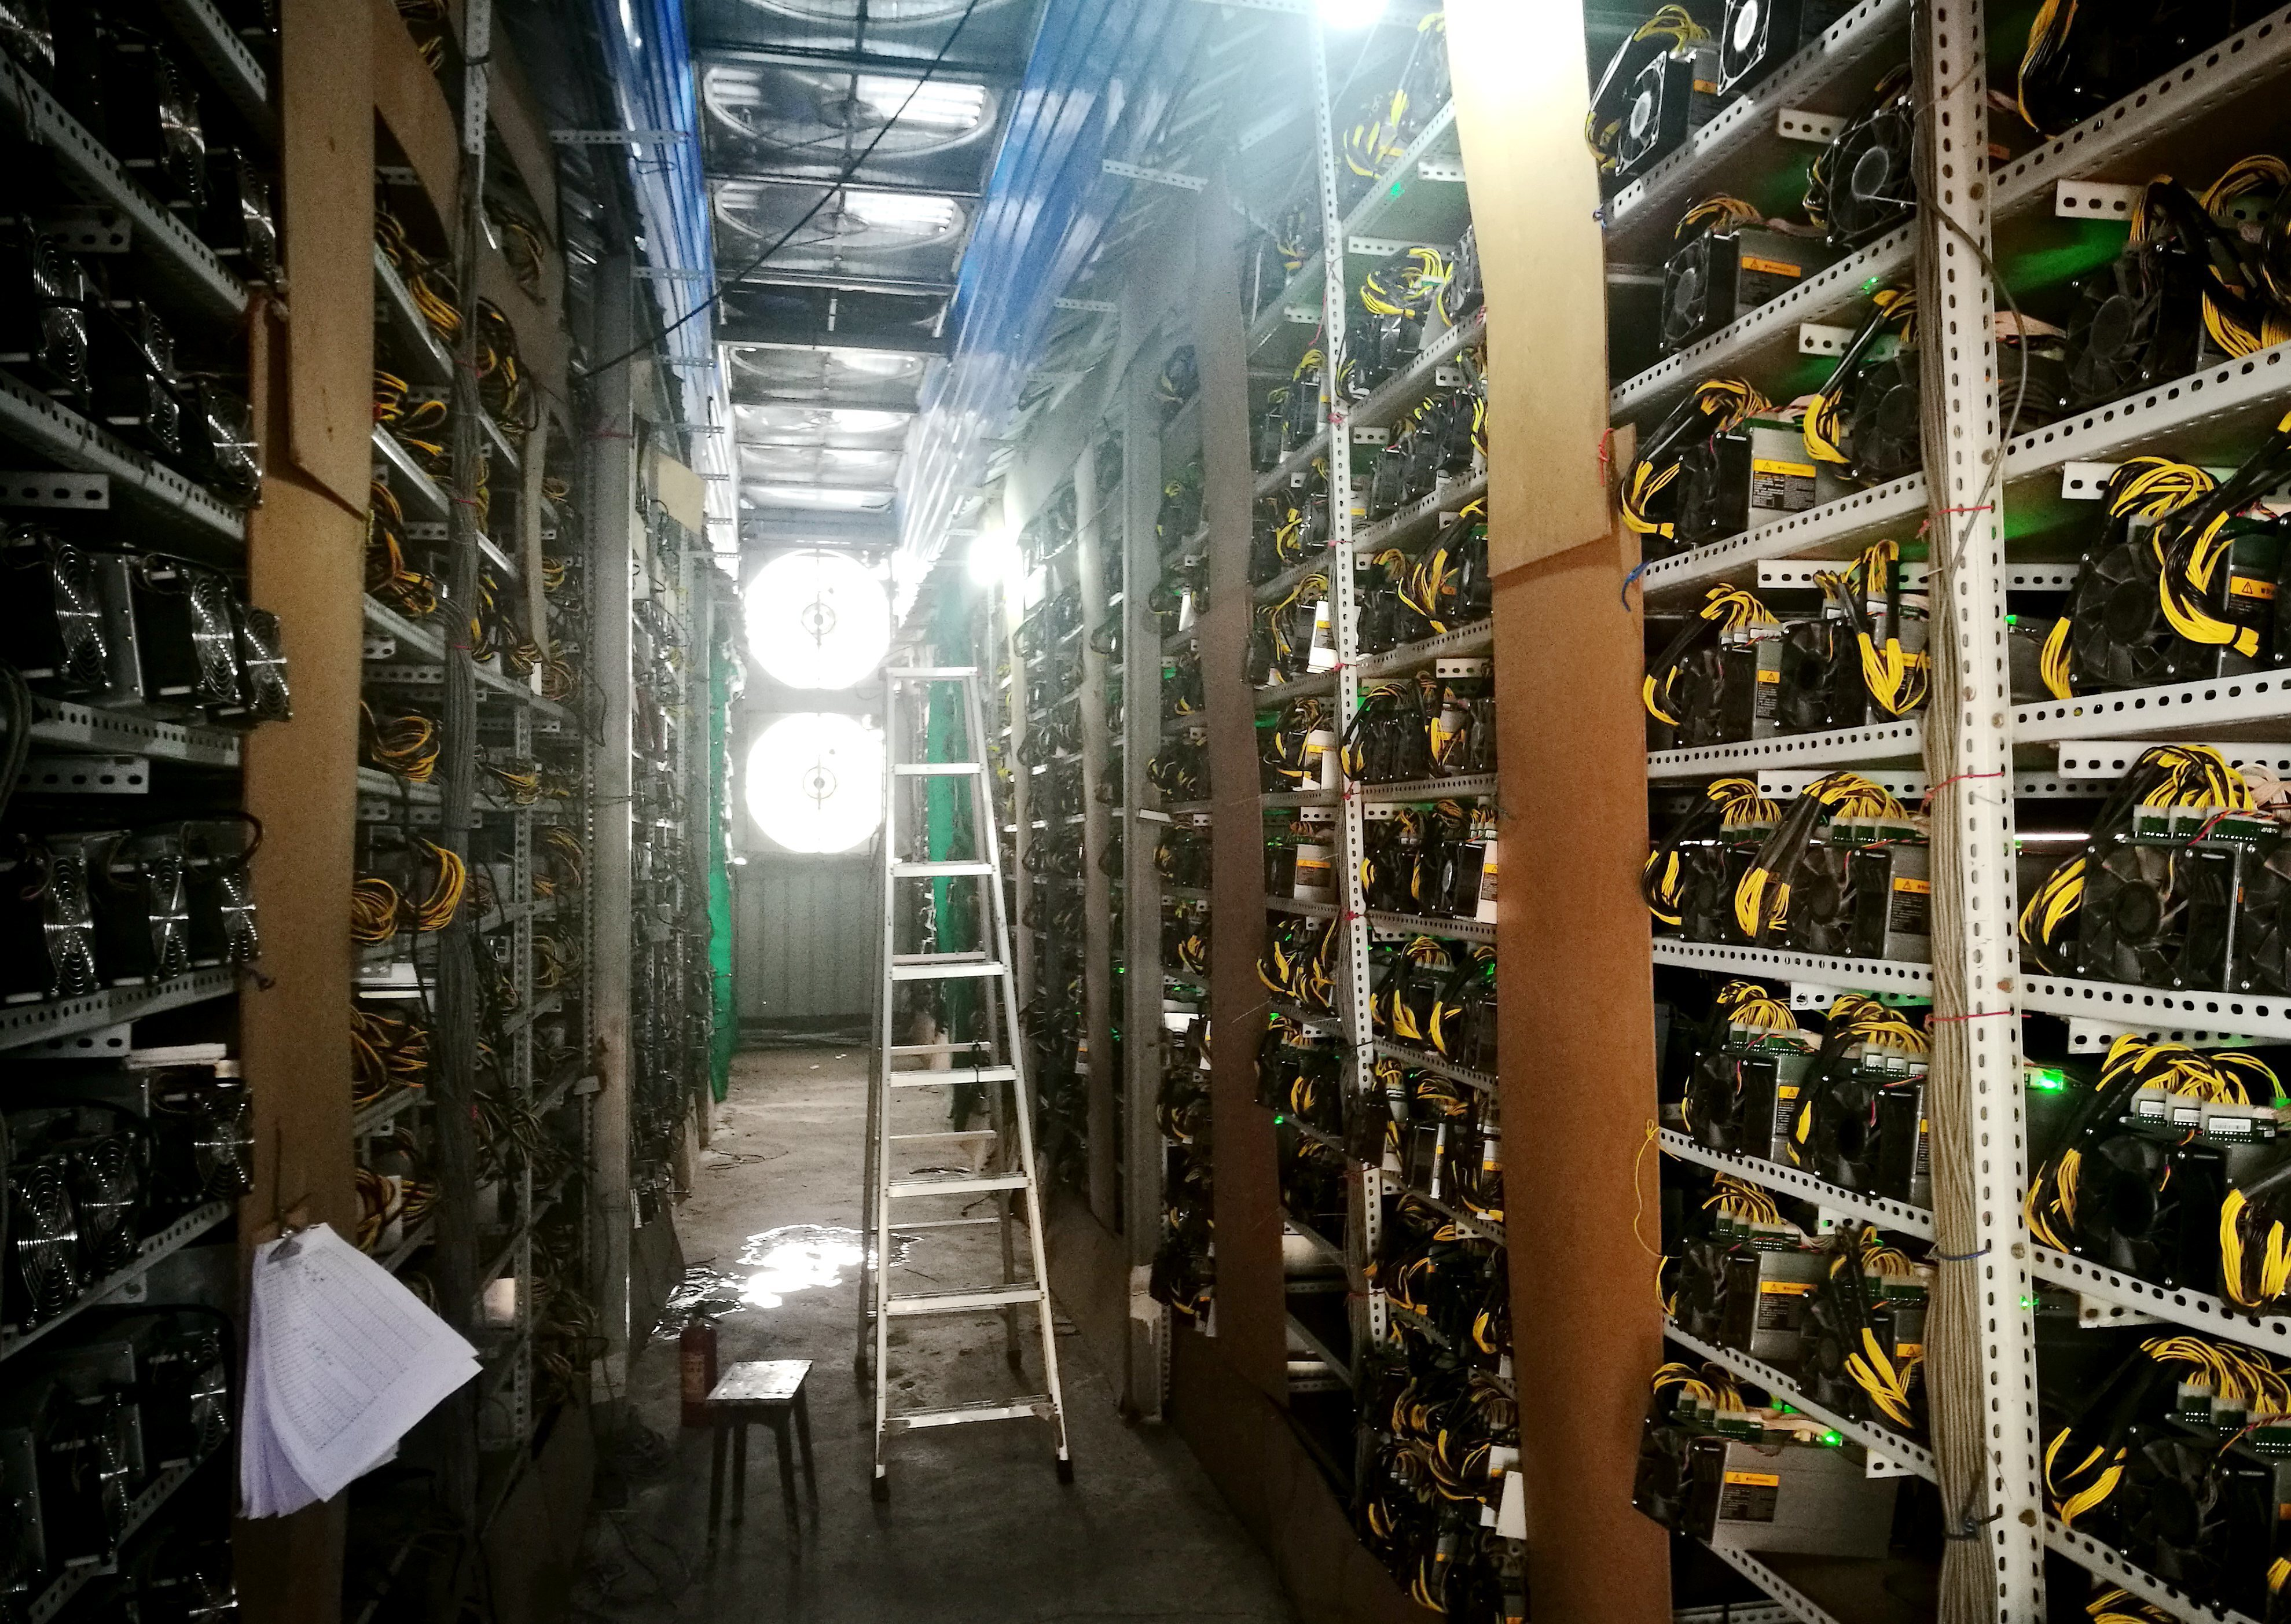 Bictoin mining machines are running at a bitcoin farm in China's Sichuan province